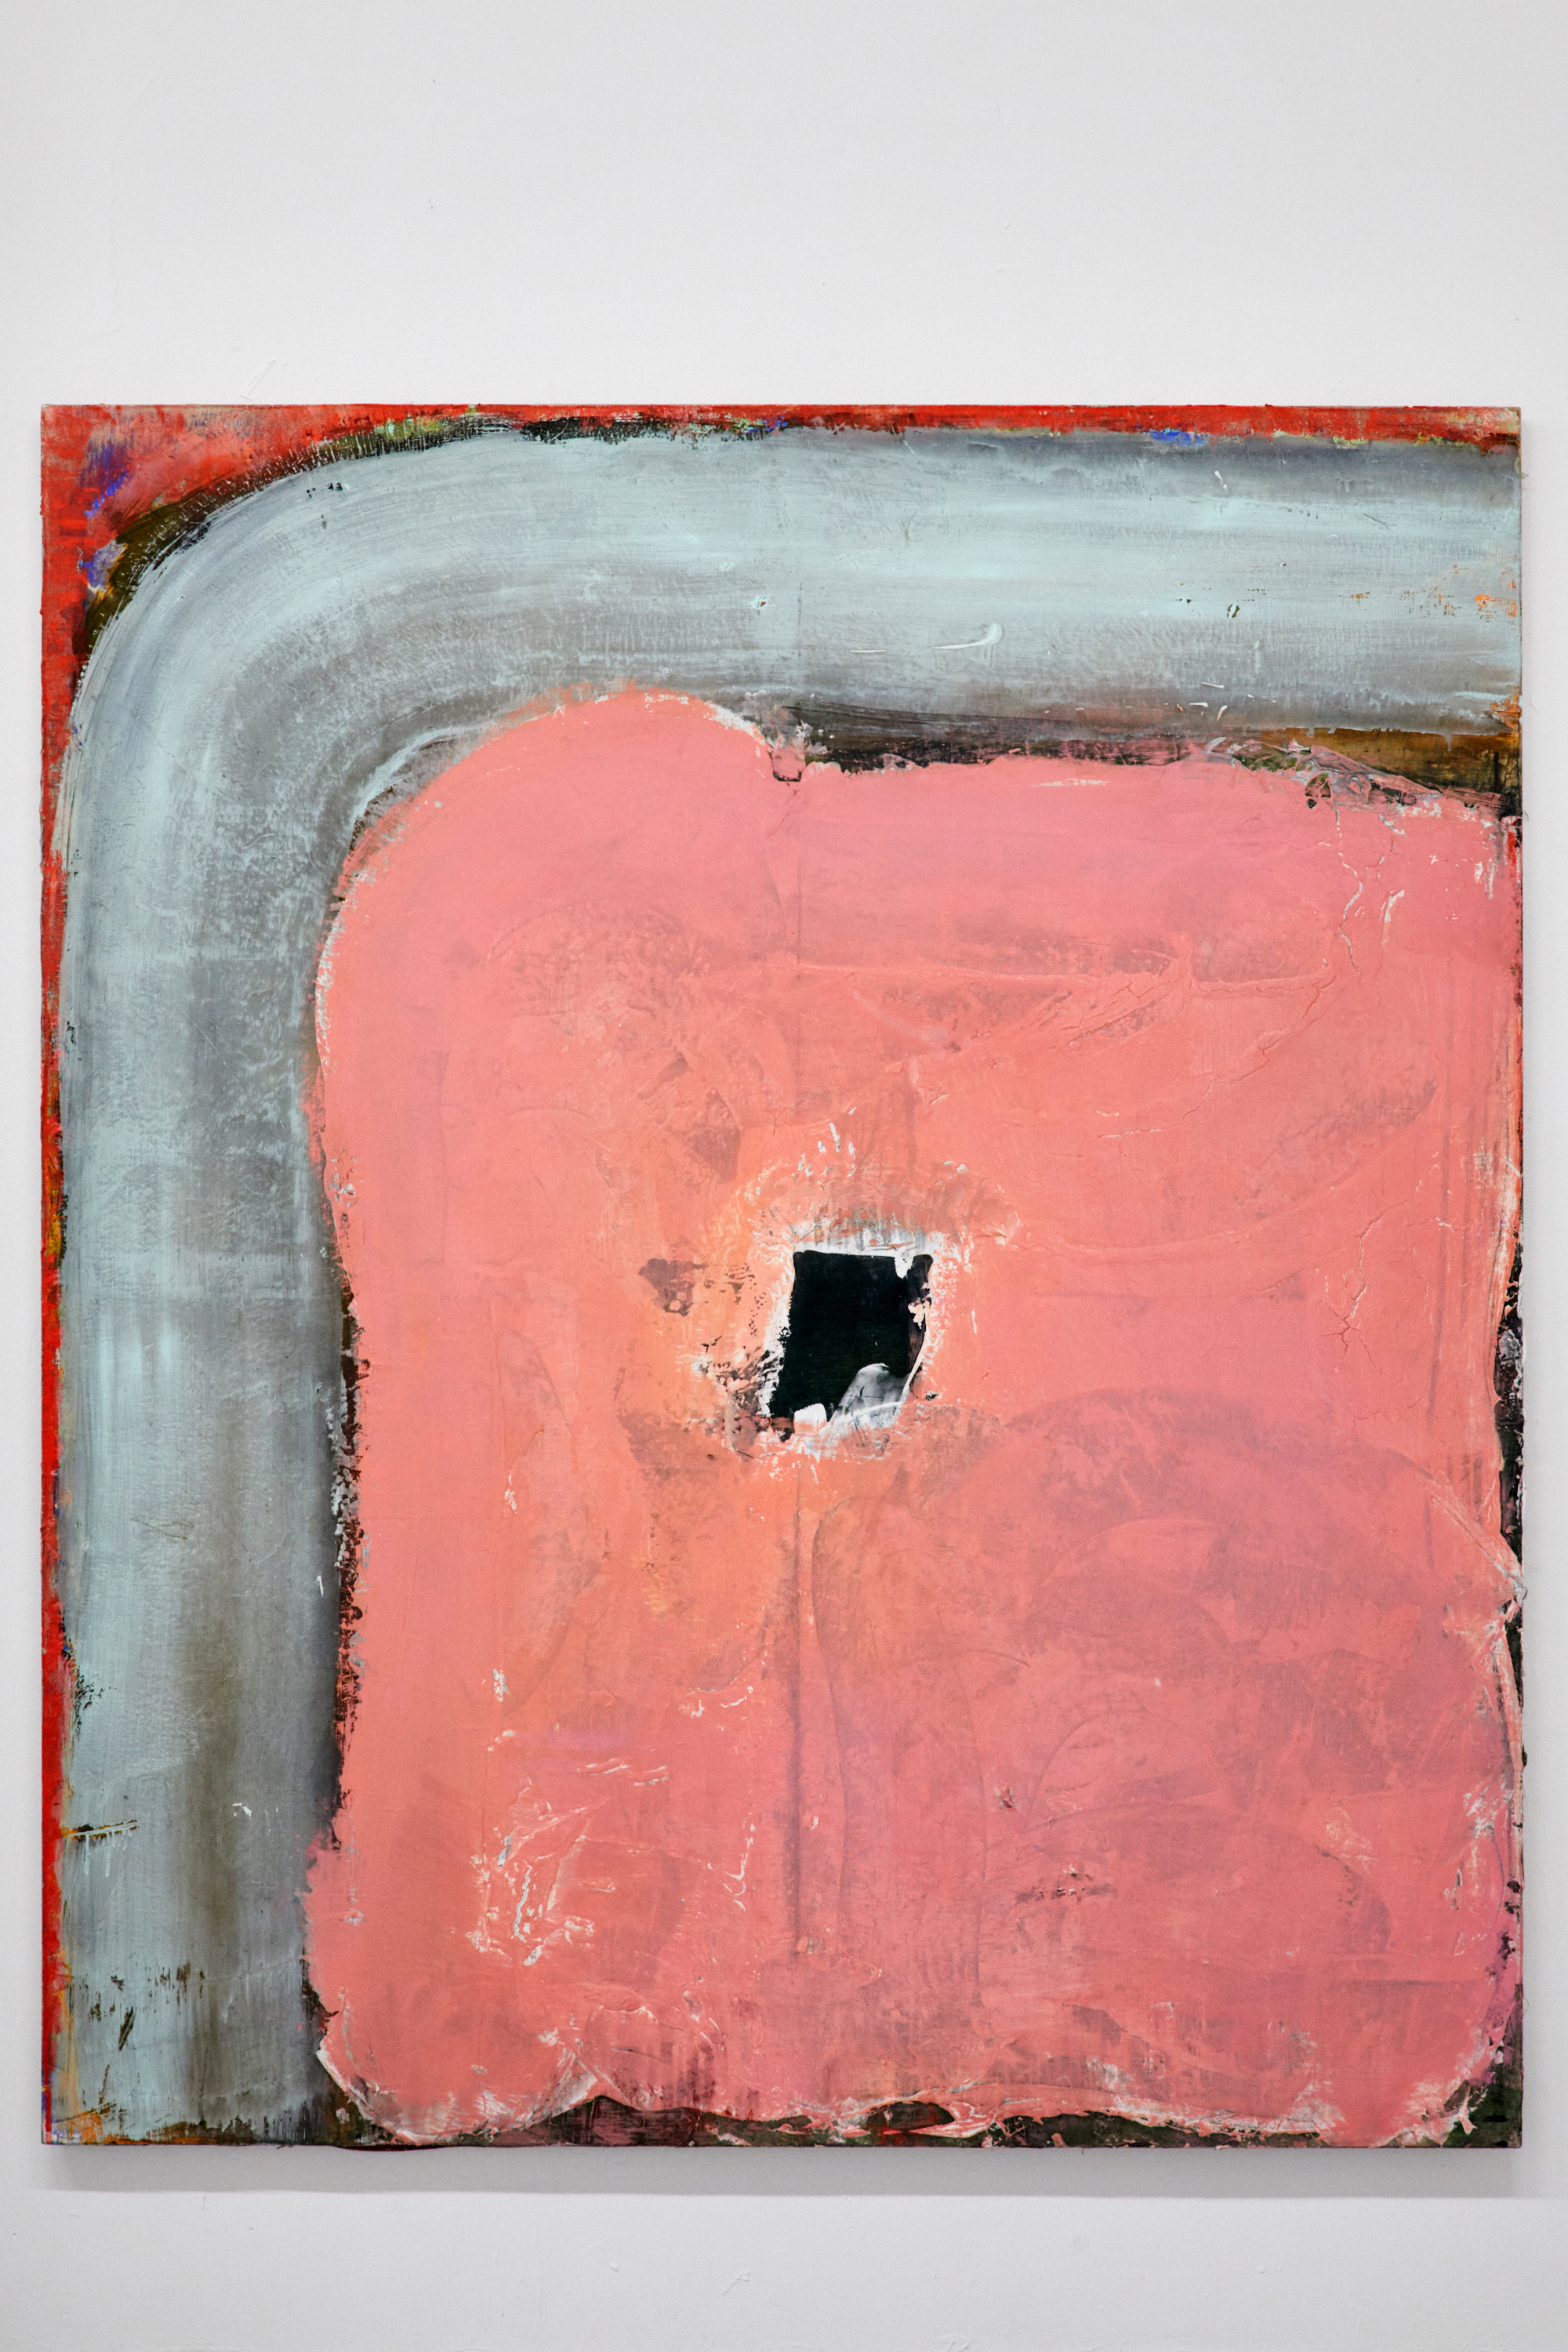 """Pink window""  200x170cm or 79x67 inches  Mixed paints on linen  2018"